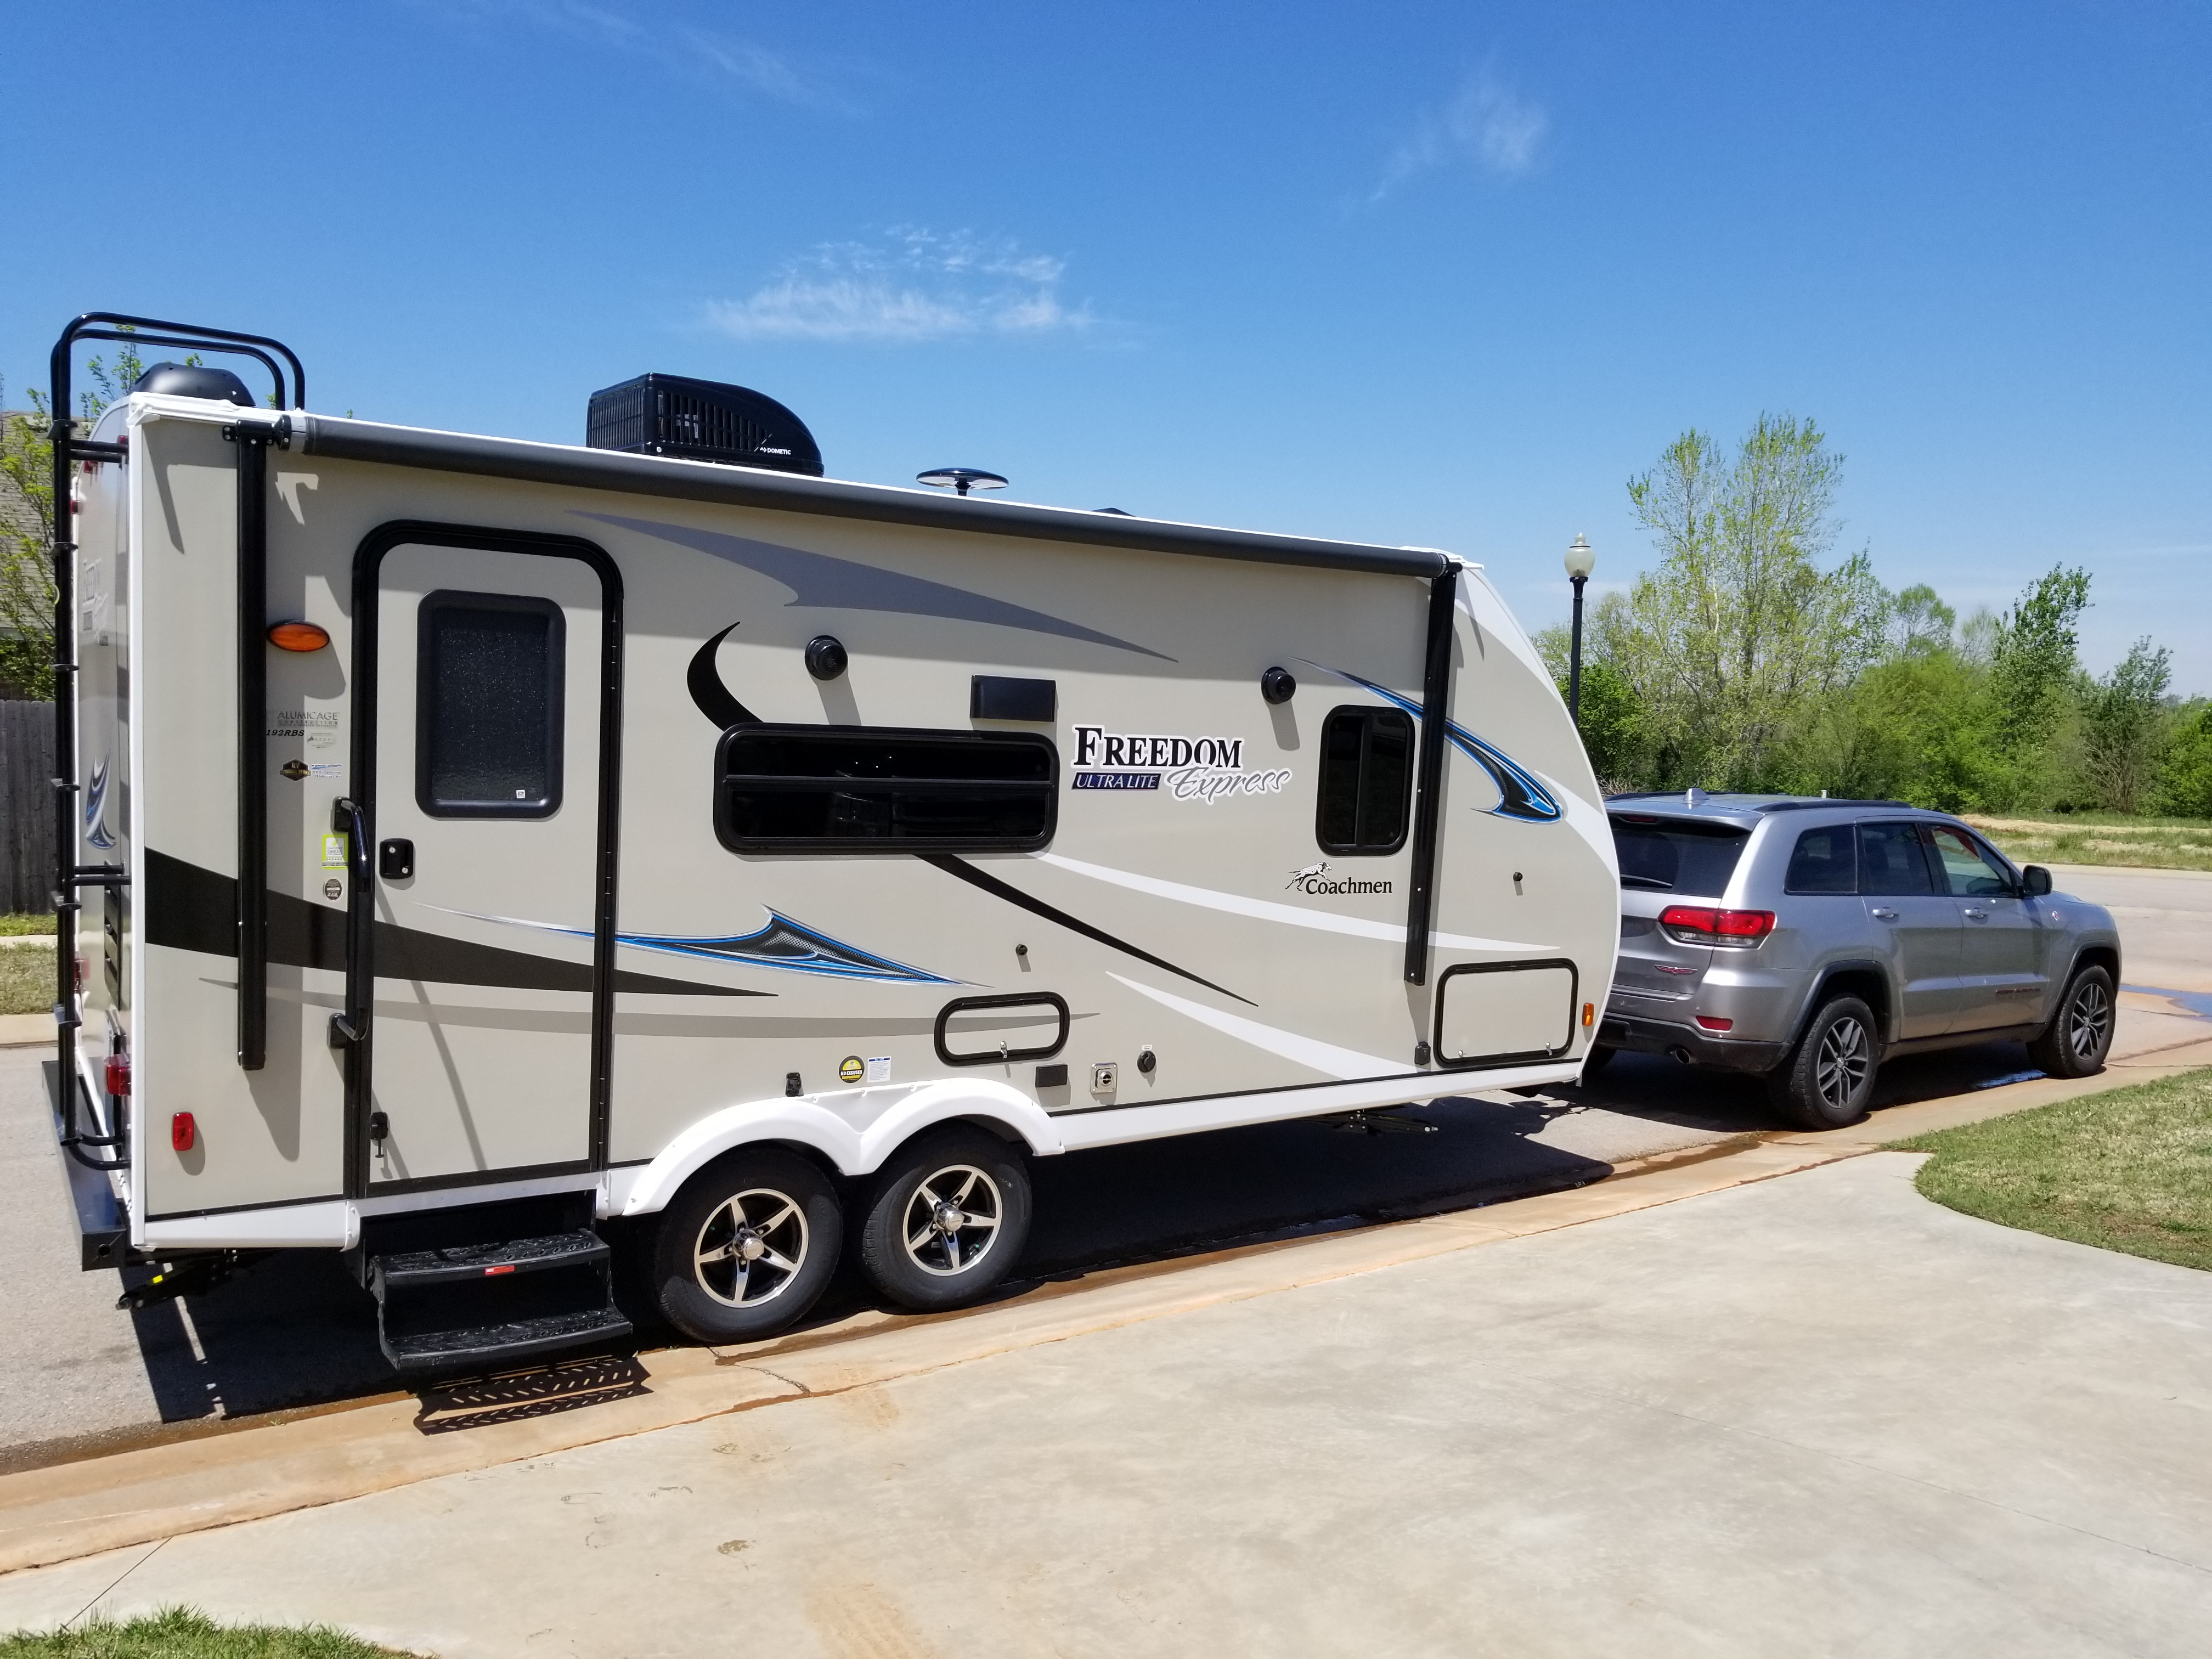 Top 25 McClain County OK RV Rentals and Motorhome Rentals